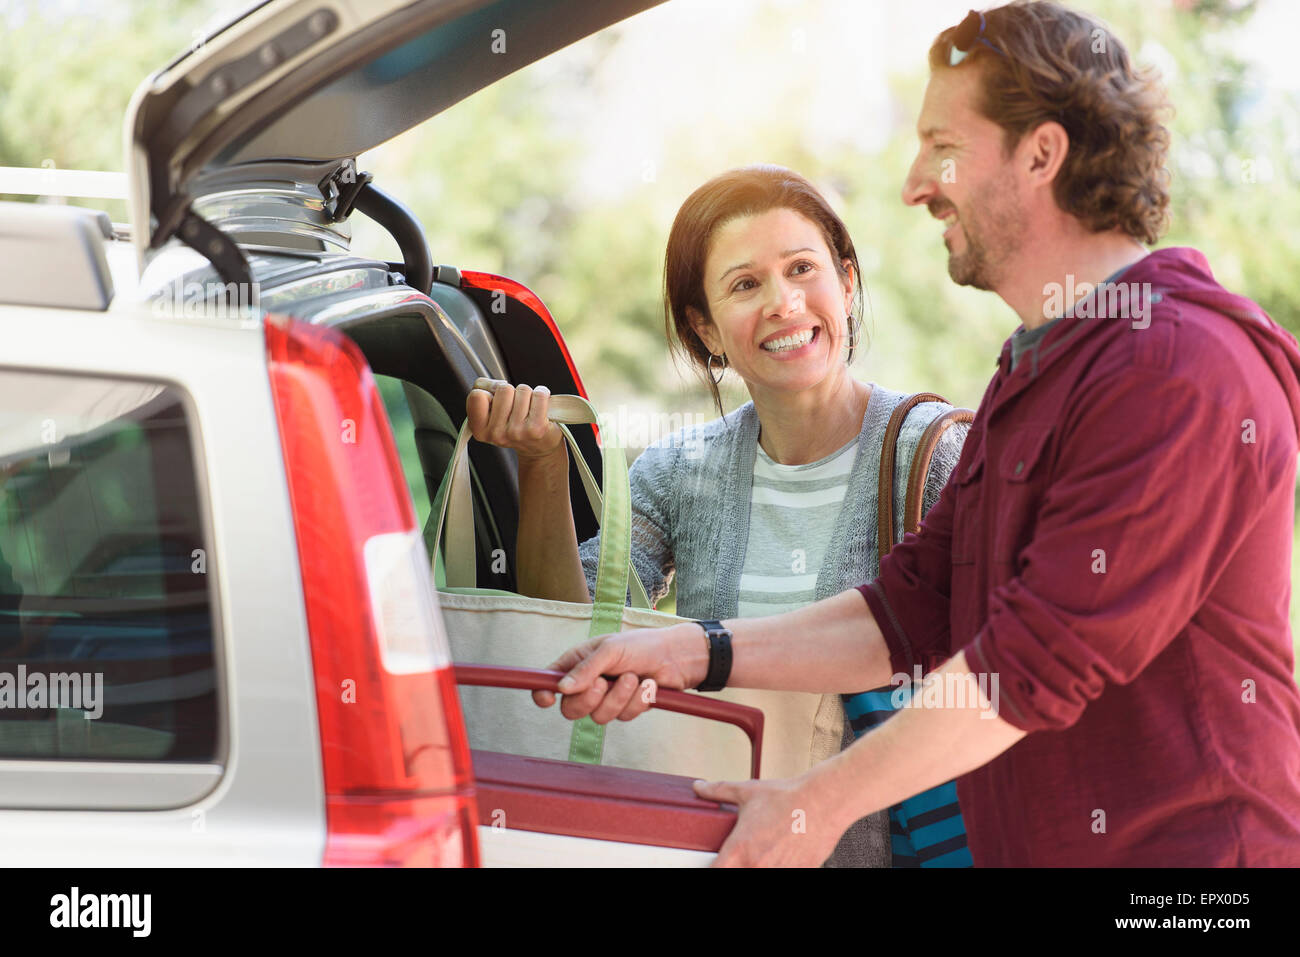 Couple packing their car - Stock Image